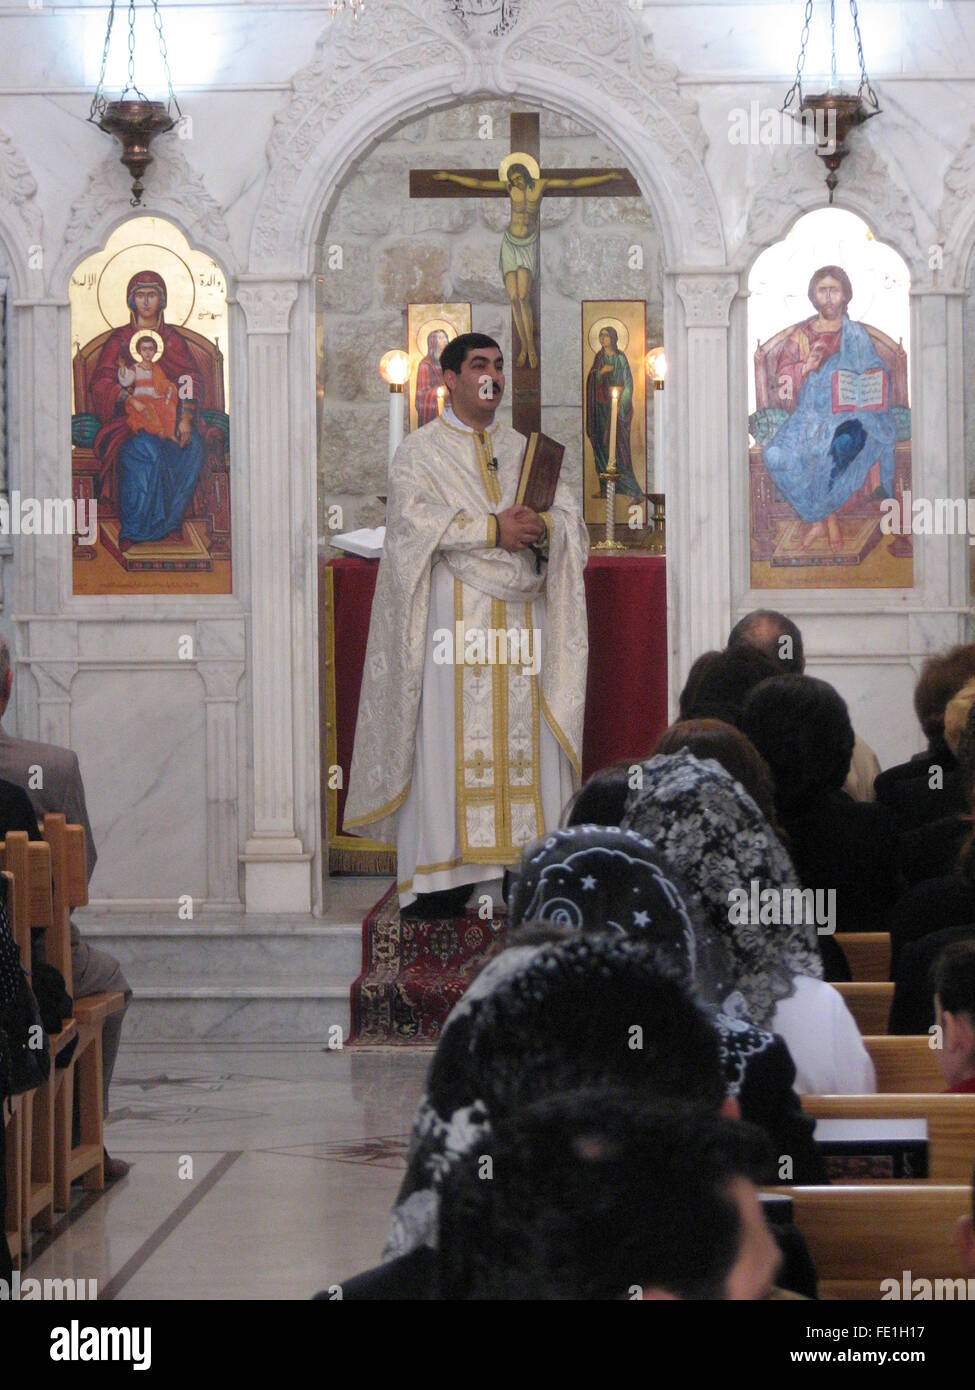 Christian Priest giving the Sunday Mass Prayer in Arabic at